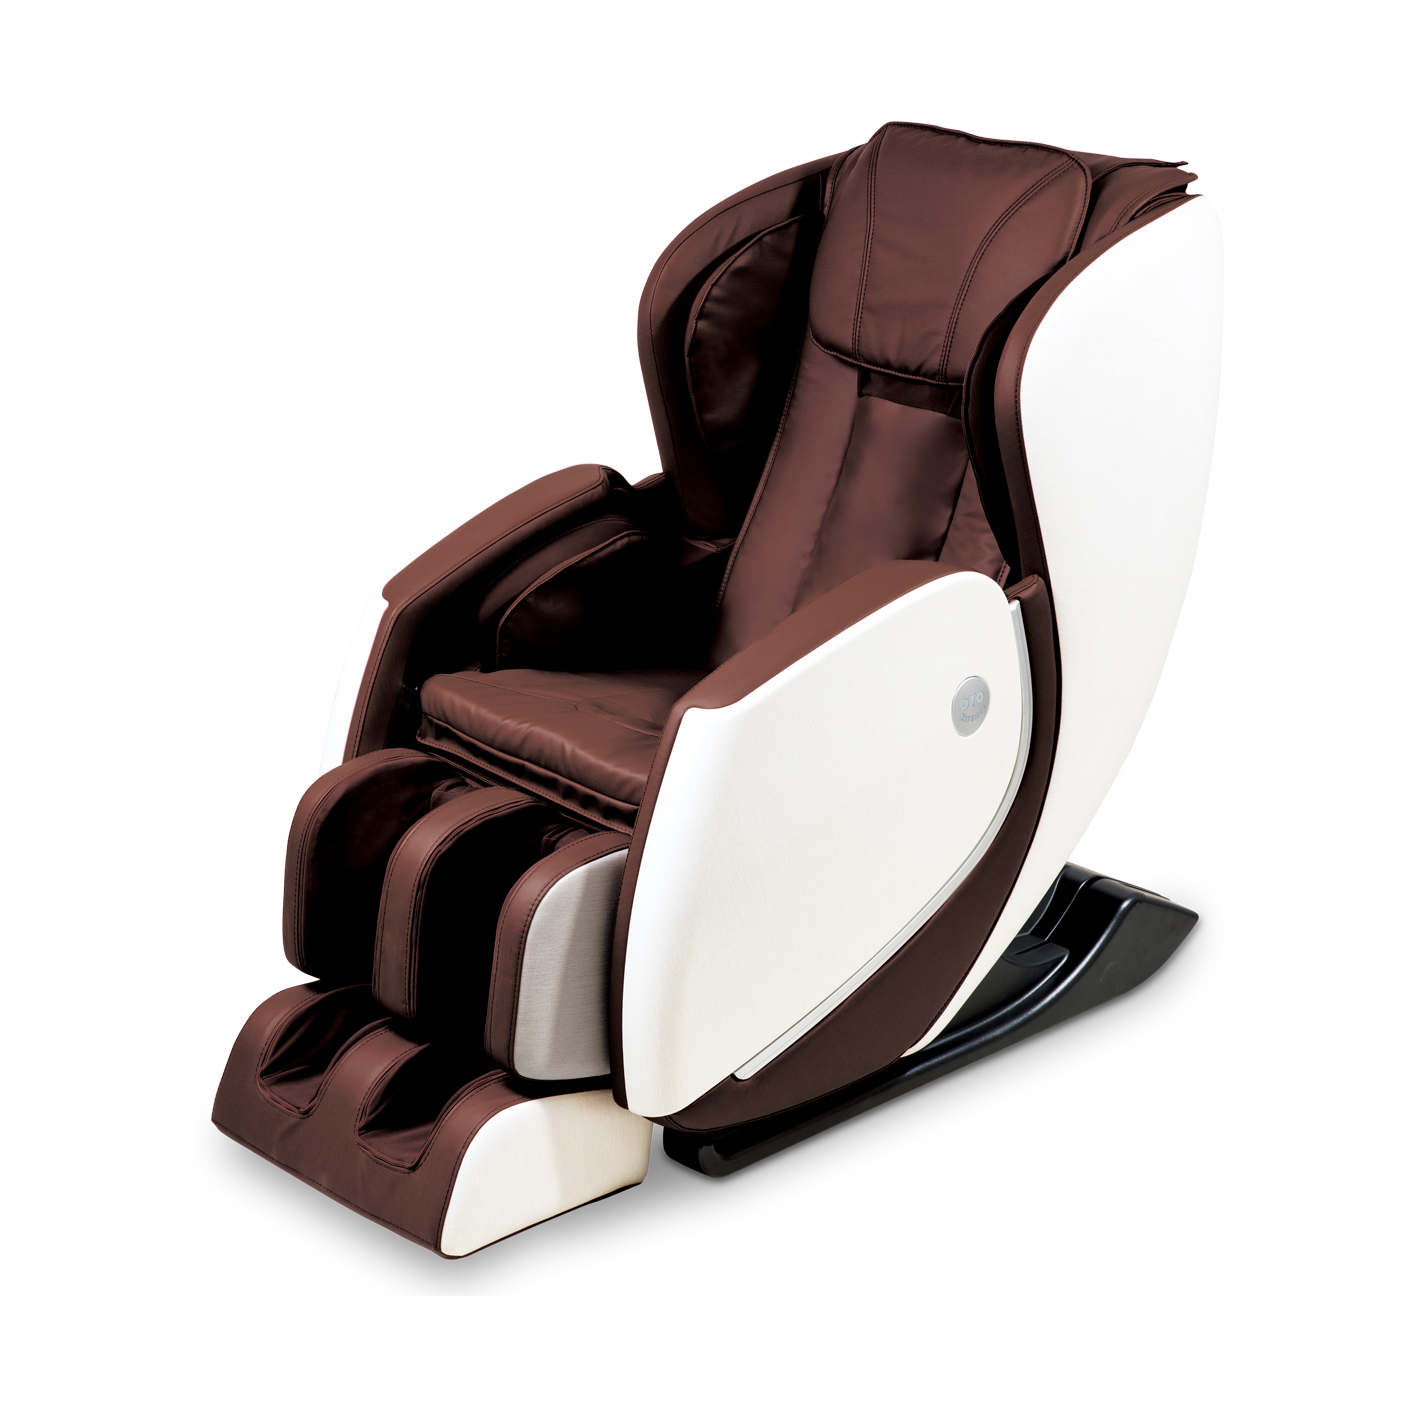 Massage Chair with seat Massager كرسي مساج بخاصية مساج الجلسة